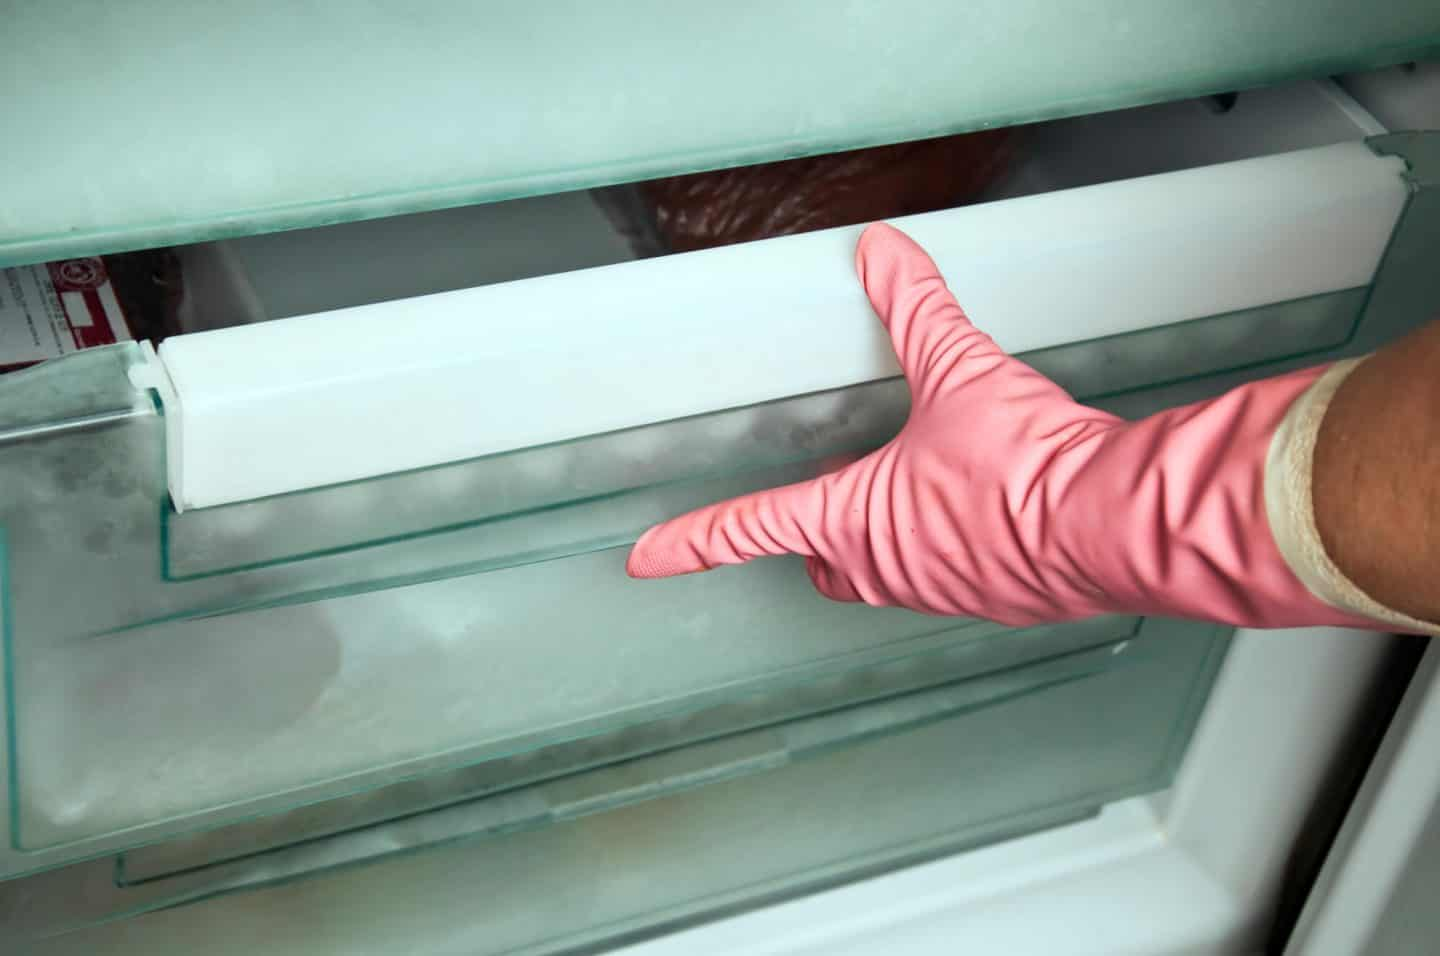 How to Deep Clean Your Freezer in 6 Simple Steps